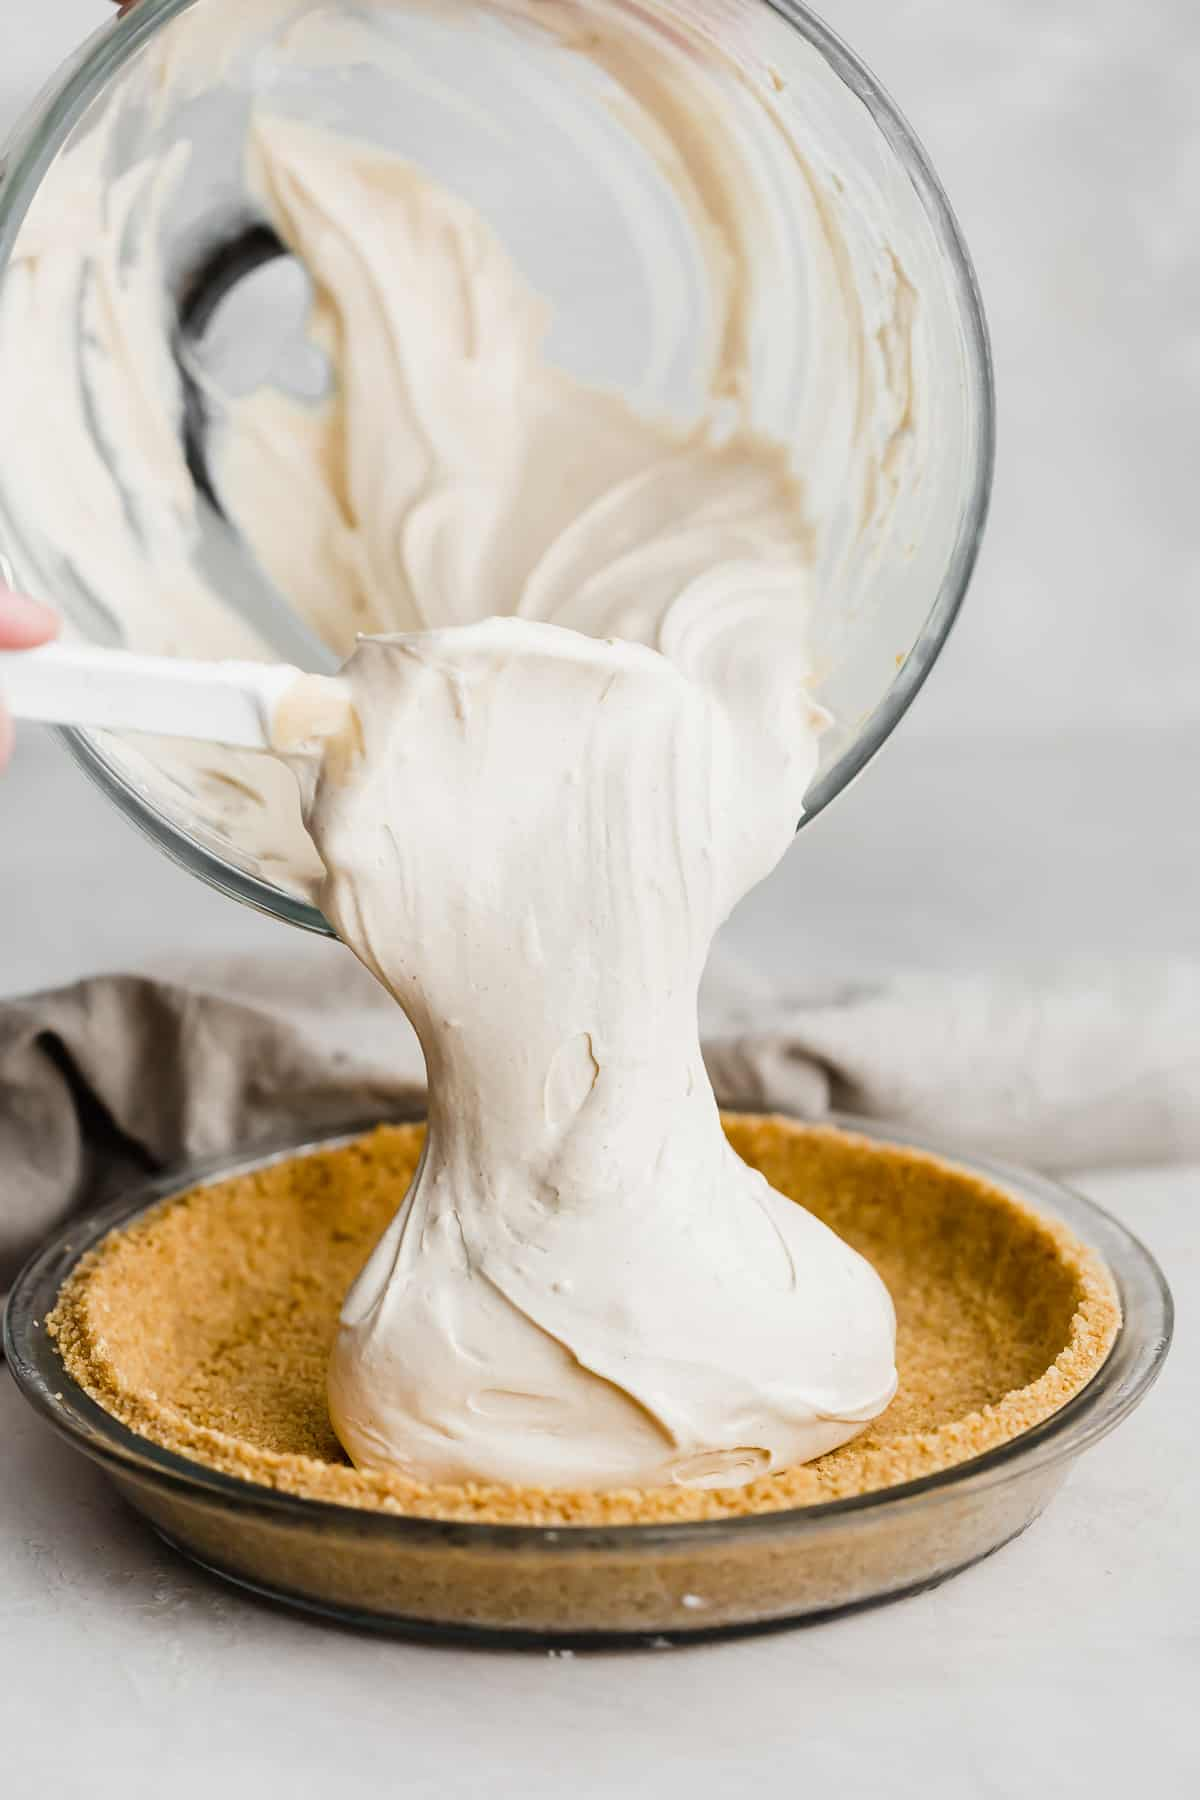 A light tan colored peanut butter mixture being poured into a graham cracker crust.